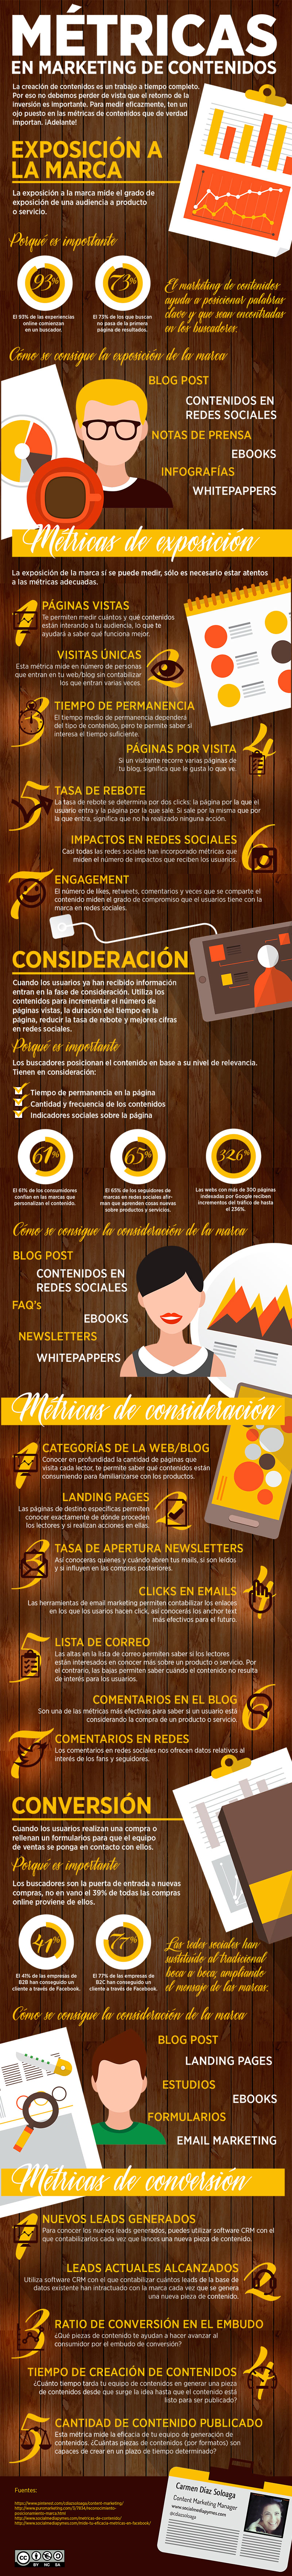 metricas-marketing-de-contenidos